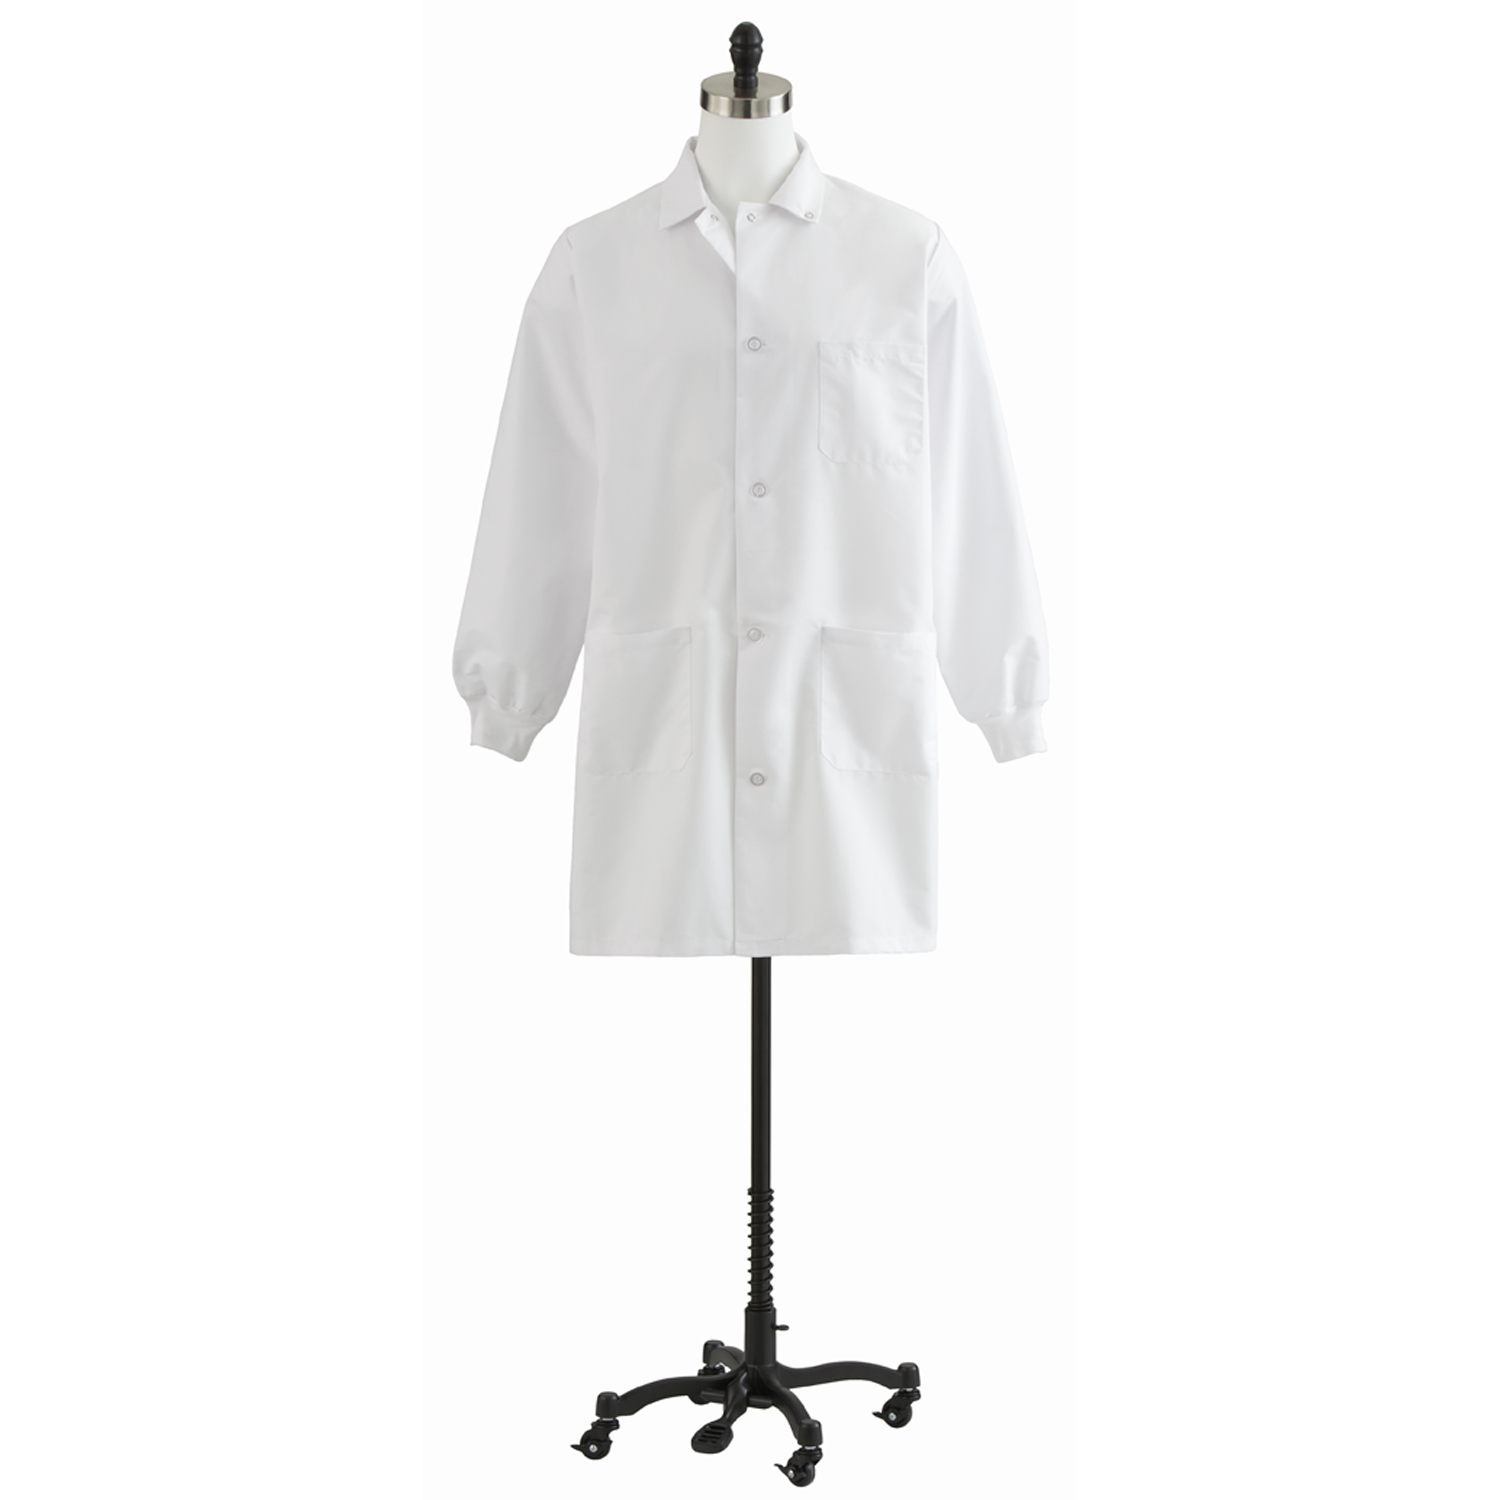 87050 Unisex Knee Length Lab Coat